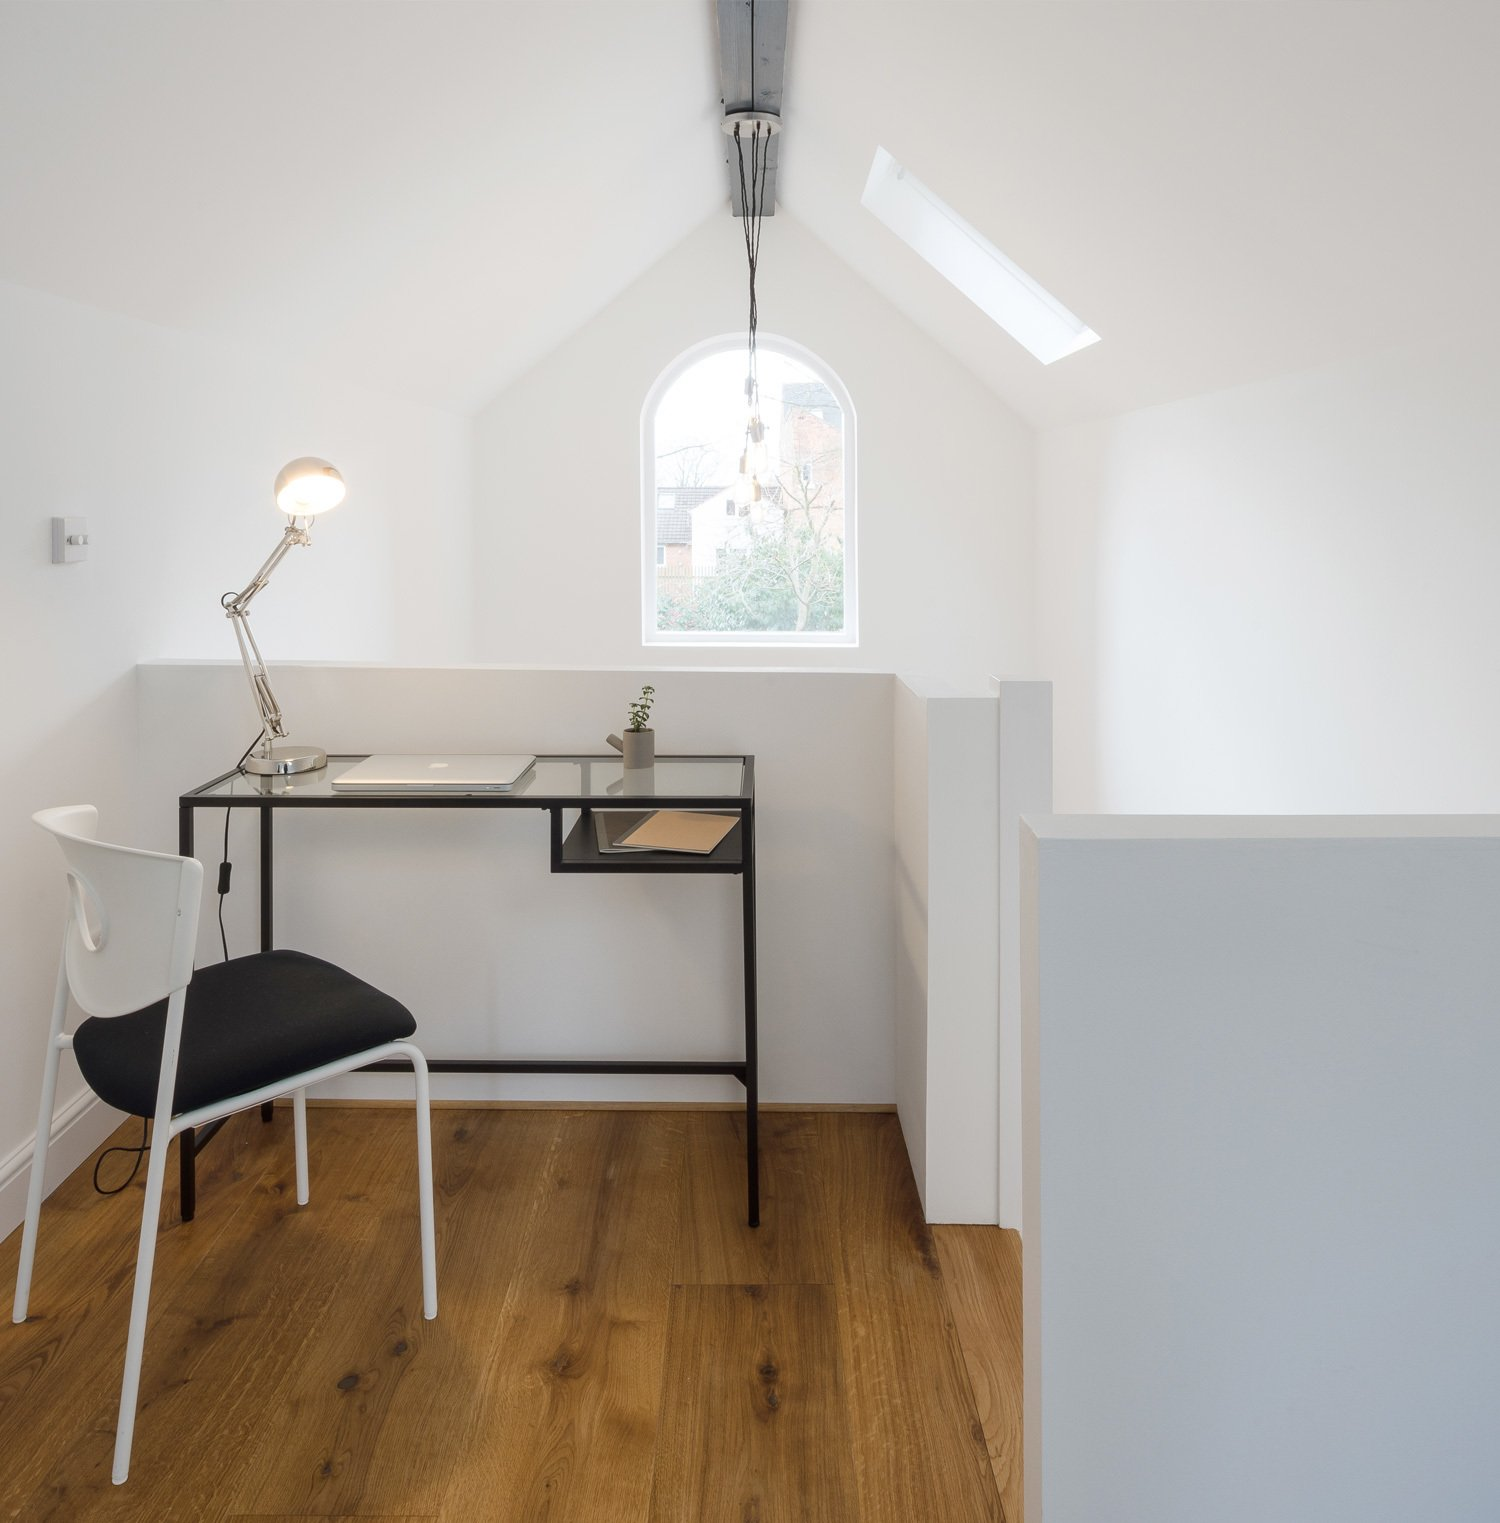 A compact workspace is perched atop the mezzanine level and has views to the garden in the rear.  We Love This Adorable Writer's Studio Camouflaged as a Coach House by Zachary Edelson